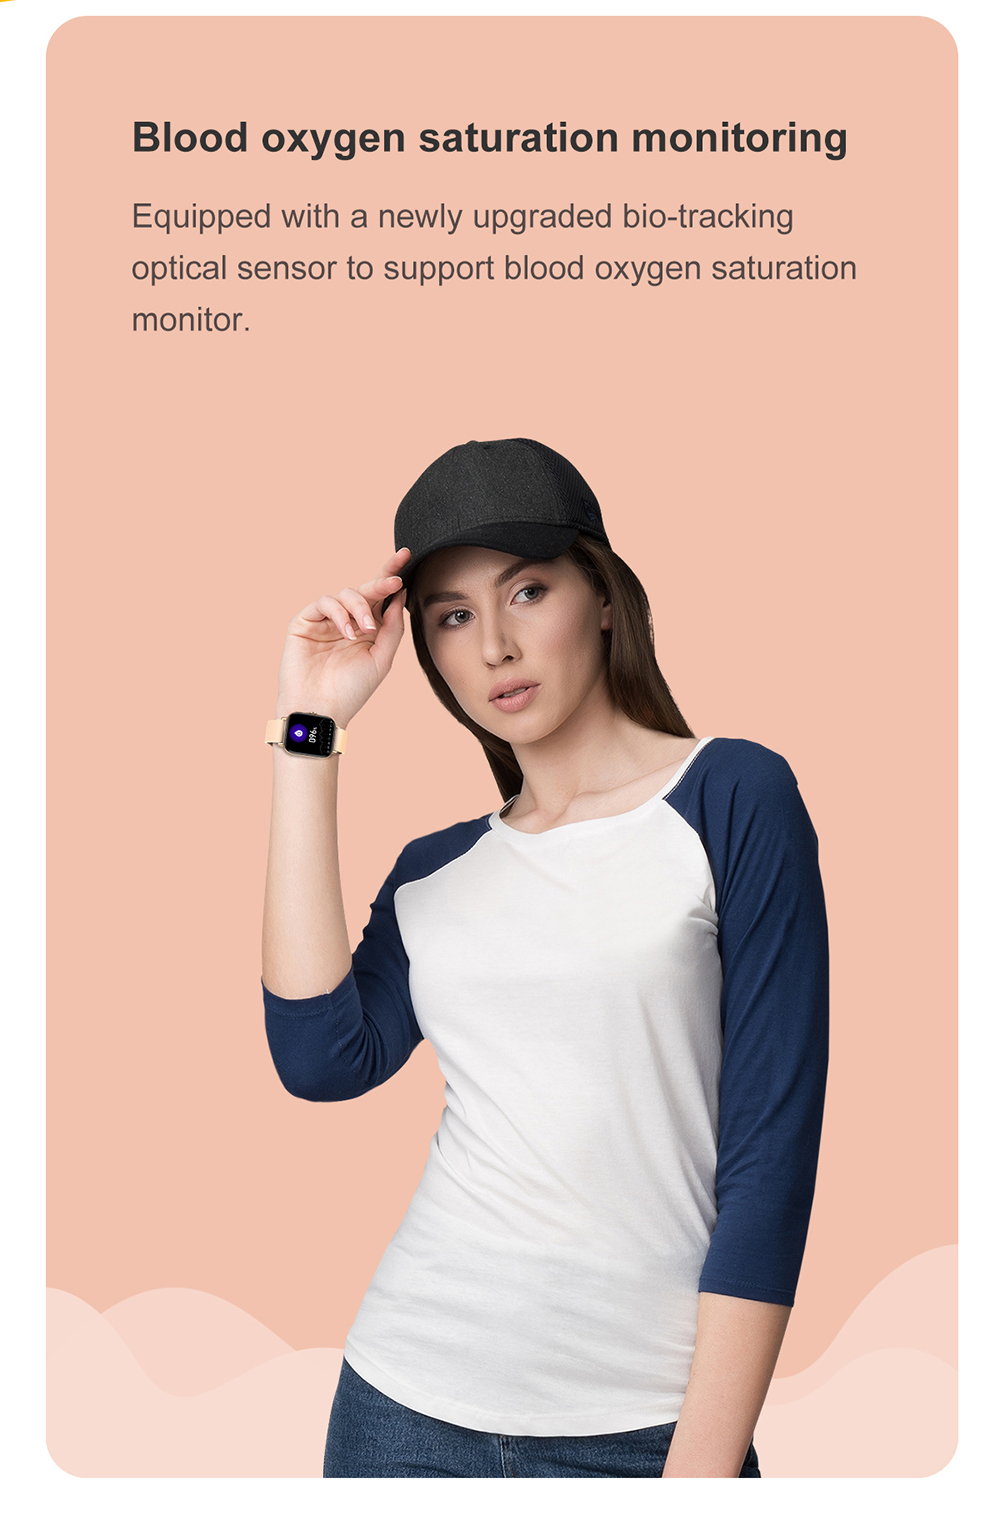 Hb17f1aec7b1b4dcc8ed966cebde3e095Z For Xiaomi IOS Apple Phone 1.78inch Smart Watch Android Men IP68 Waterproof Full Touch Woman Smartwatch Women 2021 Answer Call